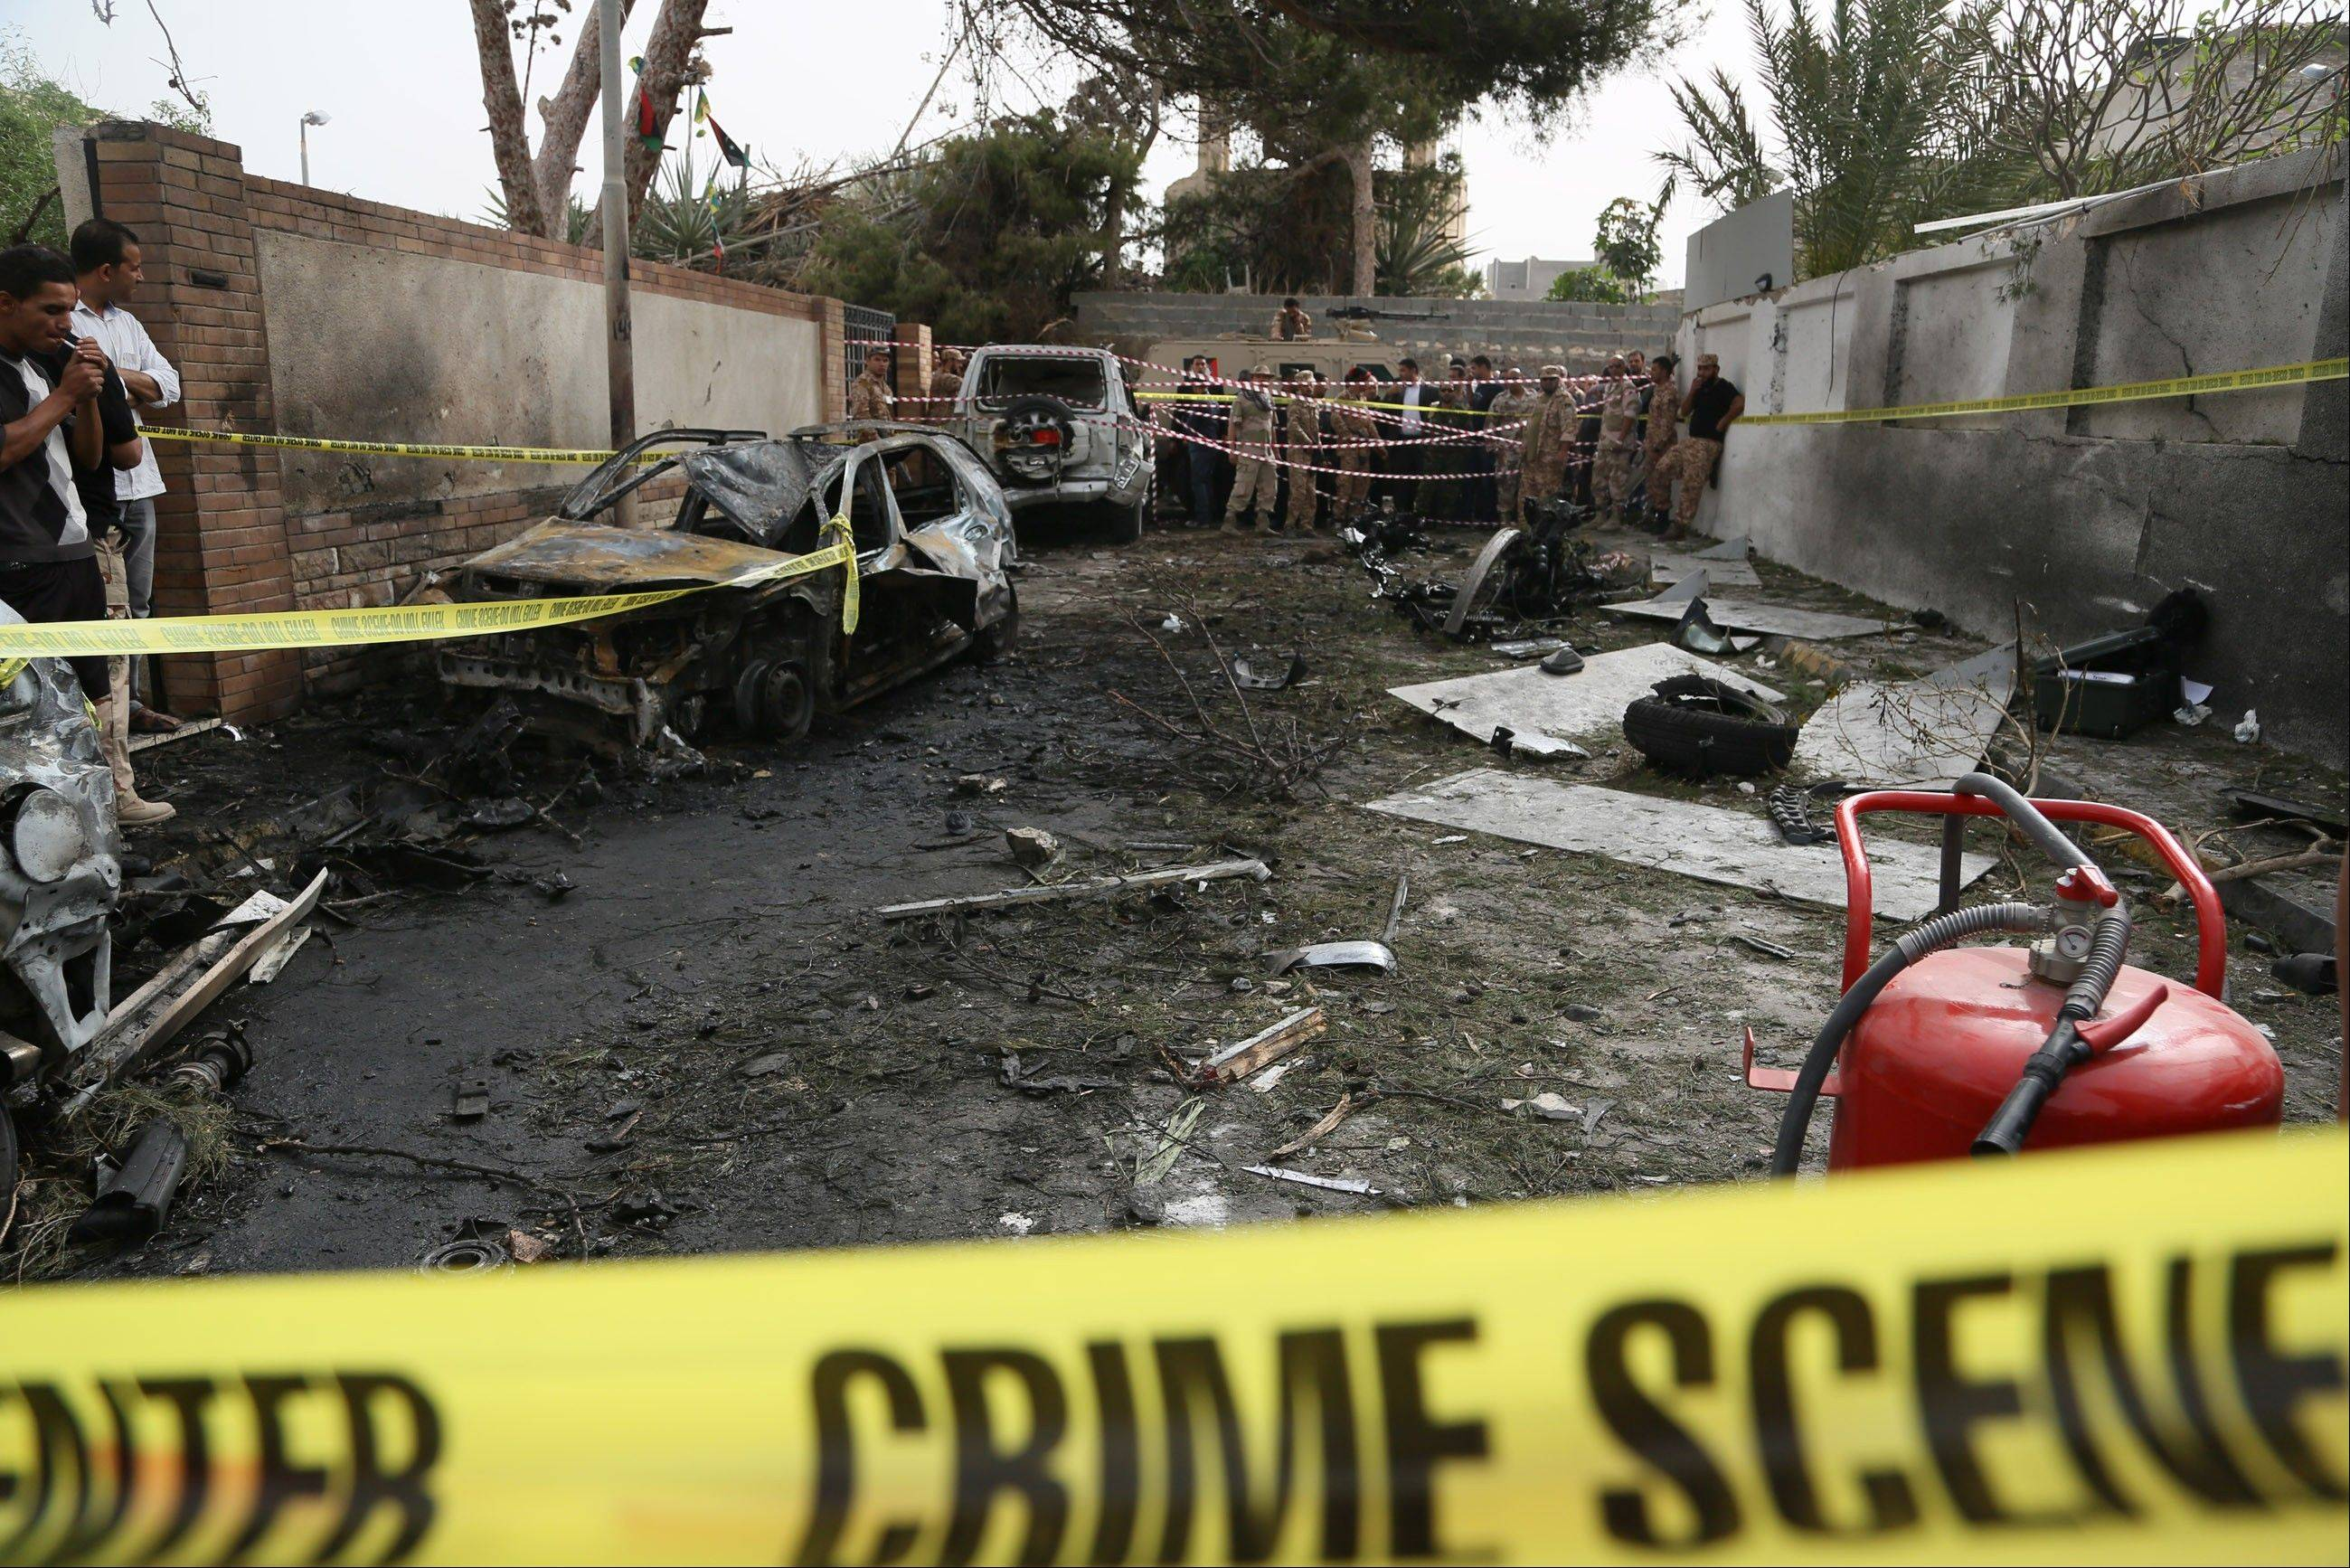 Police tape closes the site of a car bomb that targeted the French embassy wounding two French guards and causing extensive material damage in Tripoli, Libya, Tuesday, April 23, 2013. The explosives-laden car was detonated just outside the embassy building in Tripoli's upscale al-Andalus neighborhood, officials said.